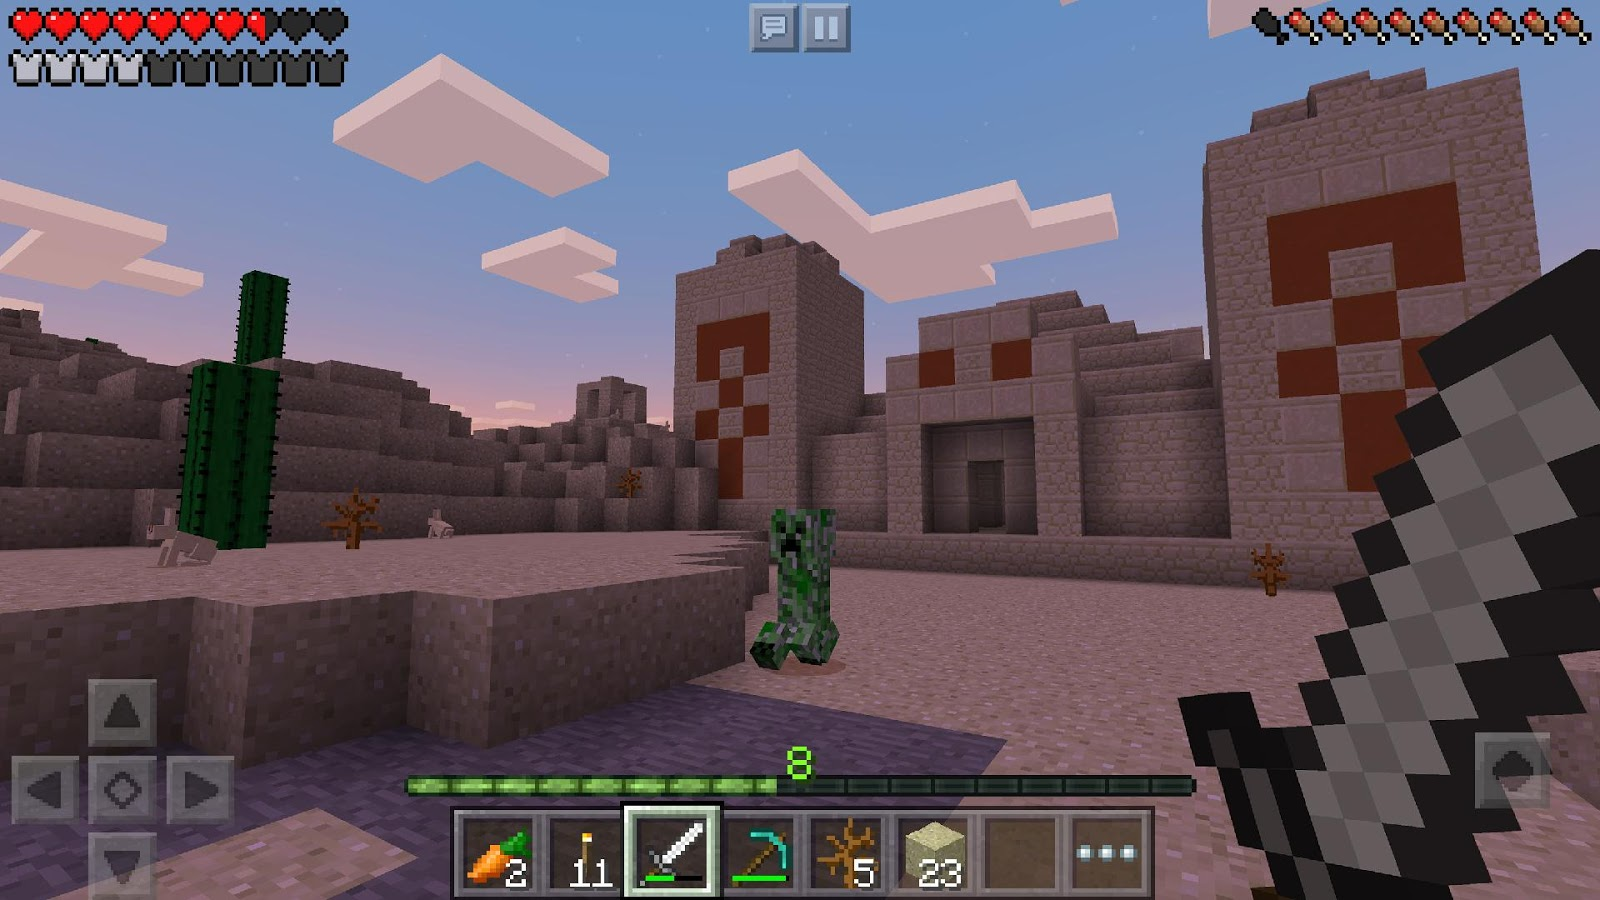 Freeoneapk Android Apk Apps Free Download Free Paid Android Games Themes Minecraft Pocket Edition 0 14 0 Build 2 Apk Download Free